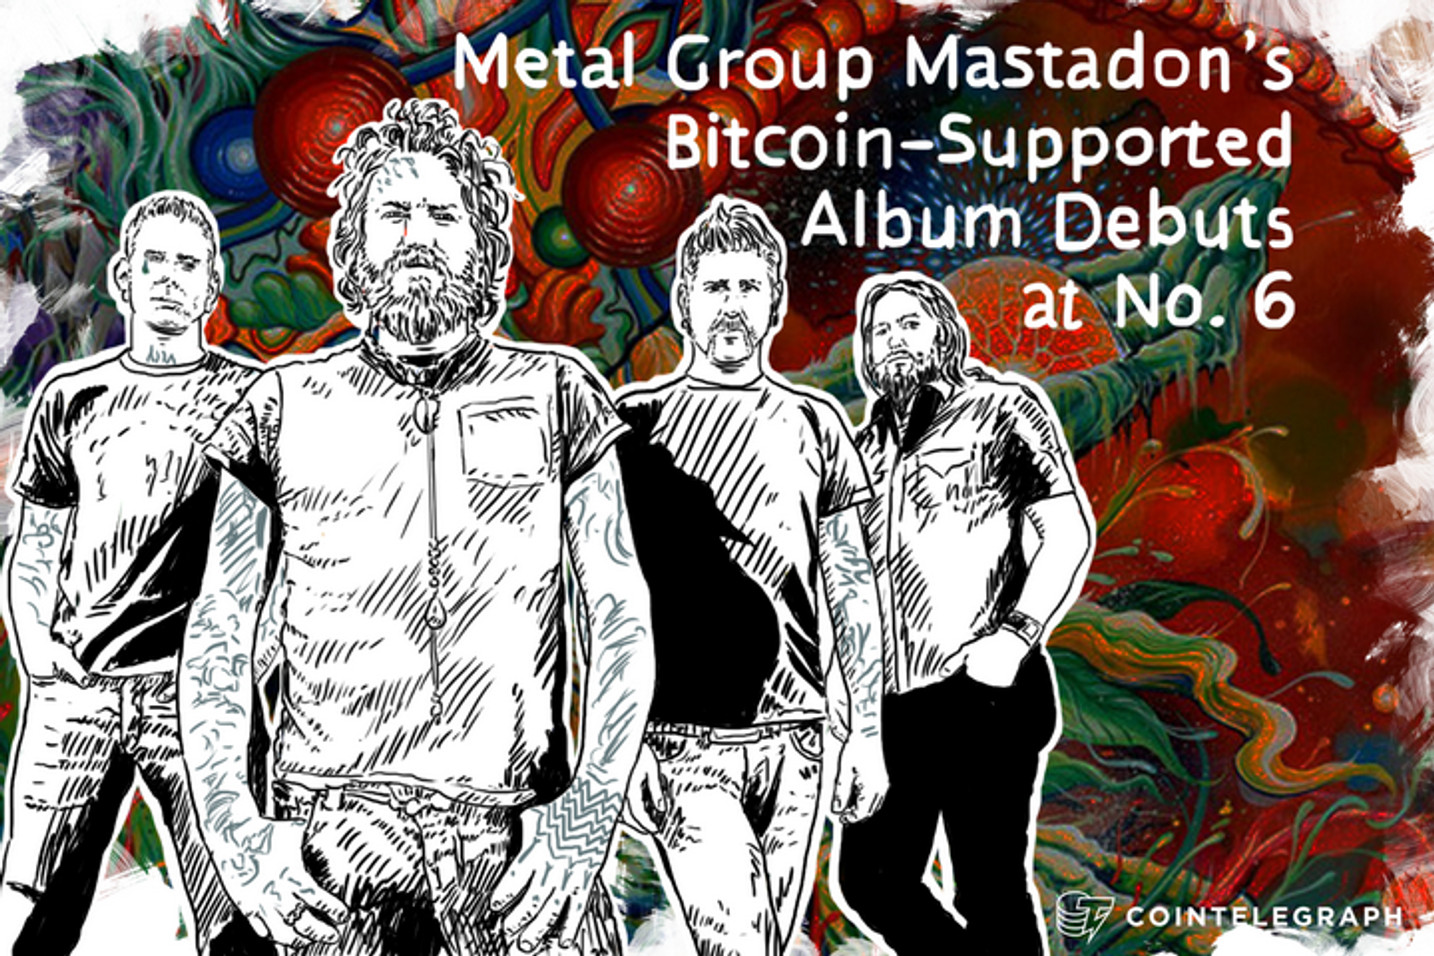 Metal Group Mastadon's Bitcoin-Supported Album Debuts at No. 6